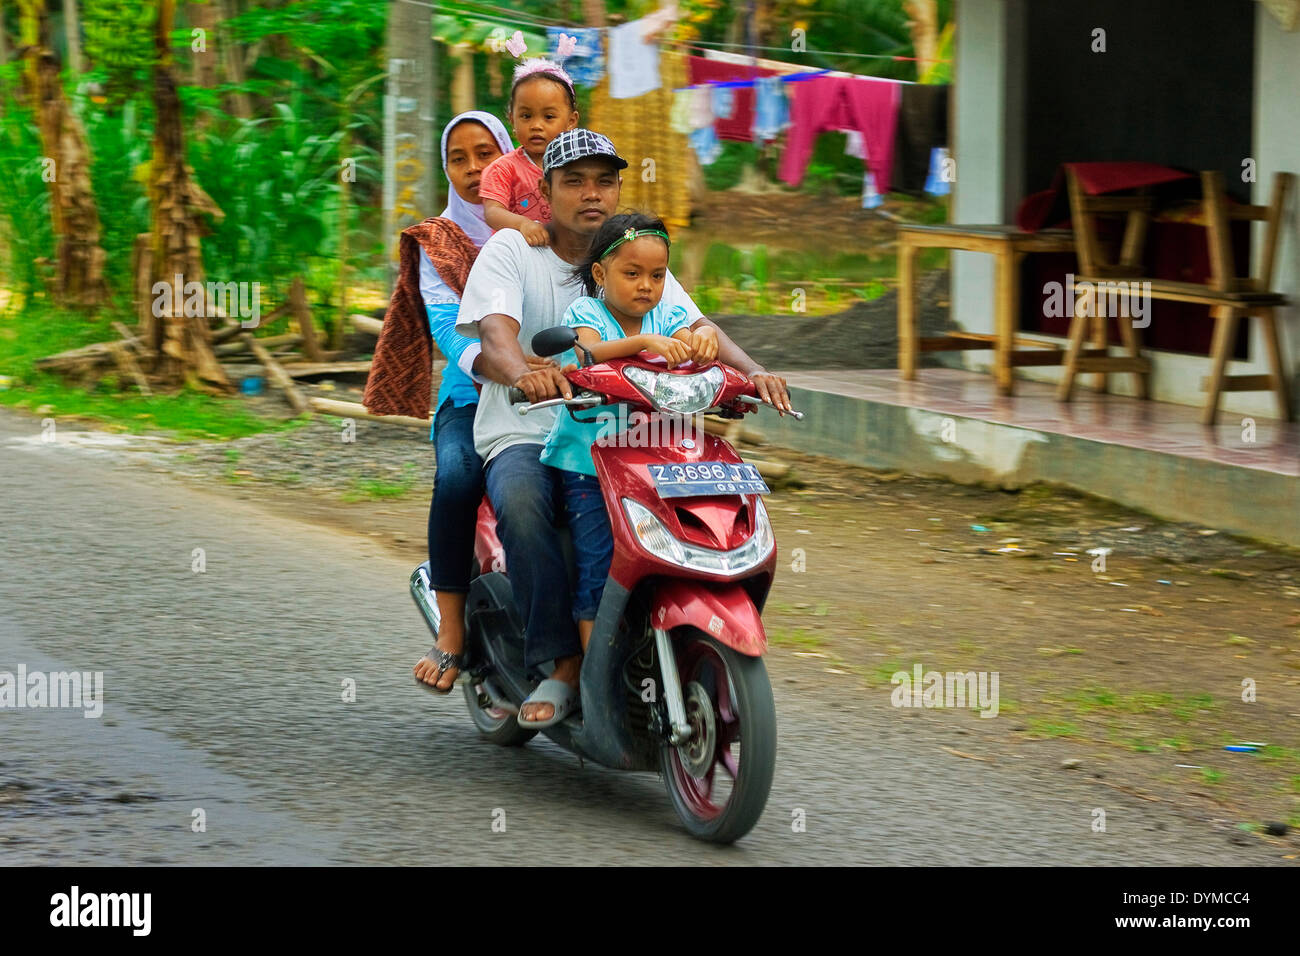 Family without helmets on motorbike in rural district near Pangandaran; Cijulang, West Java, Java, Indonesia - Stock Image